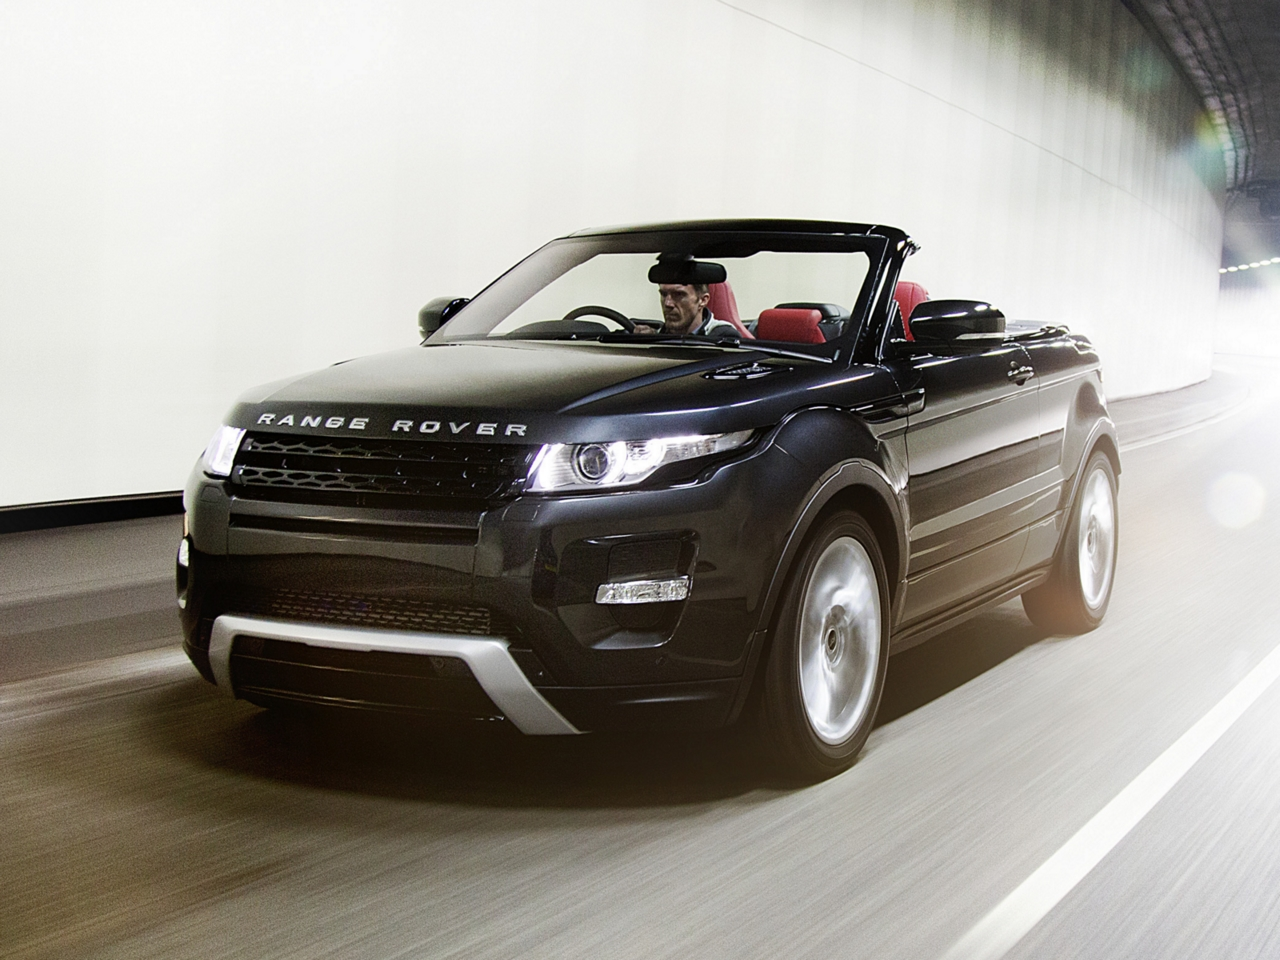 Range Rover Evoque Convertible Enters Production In 2014